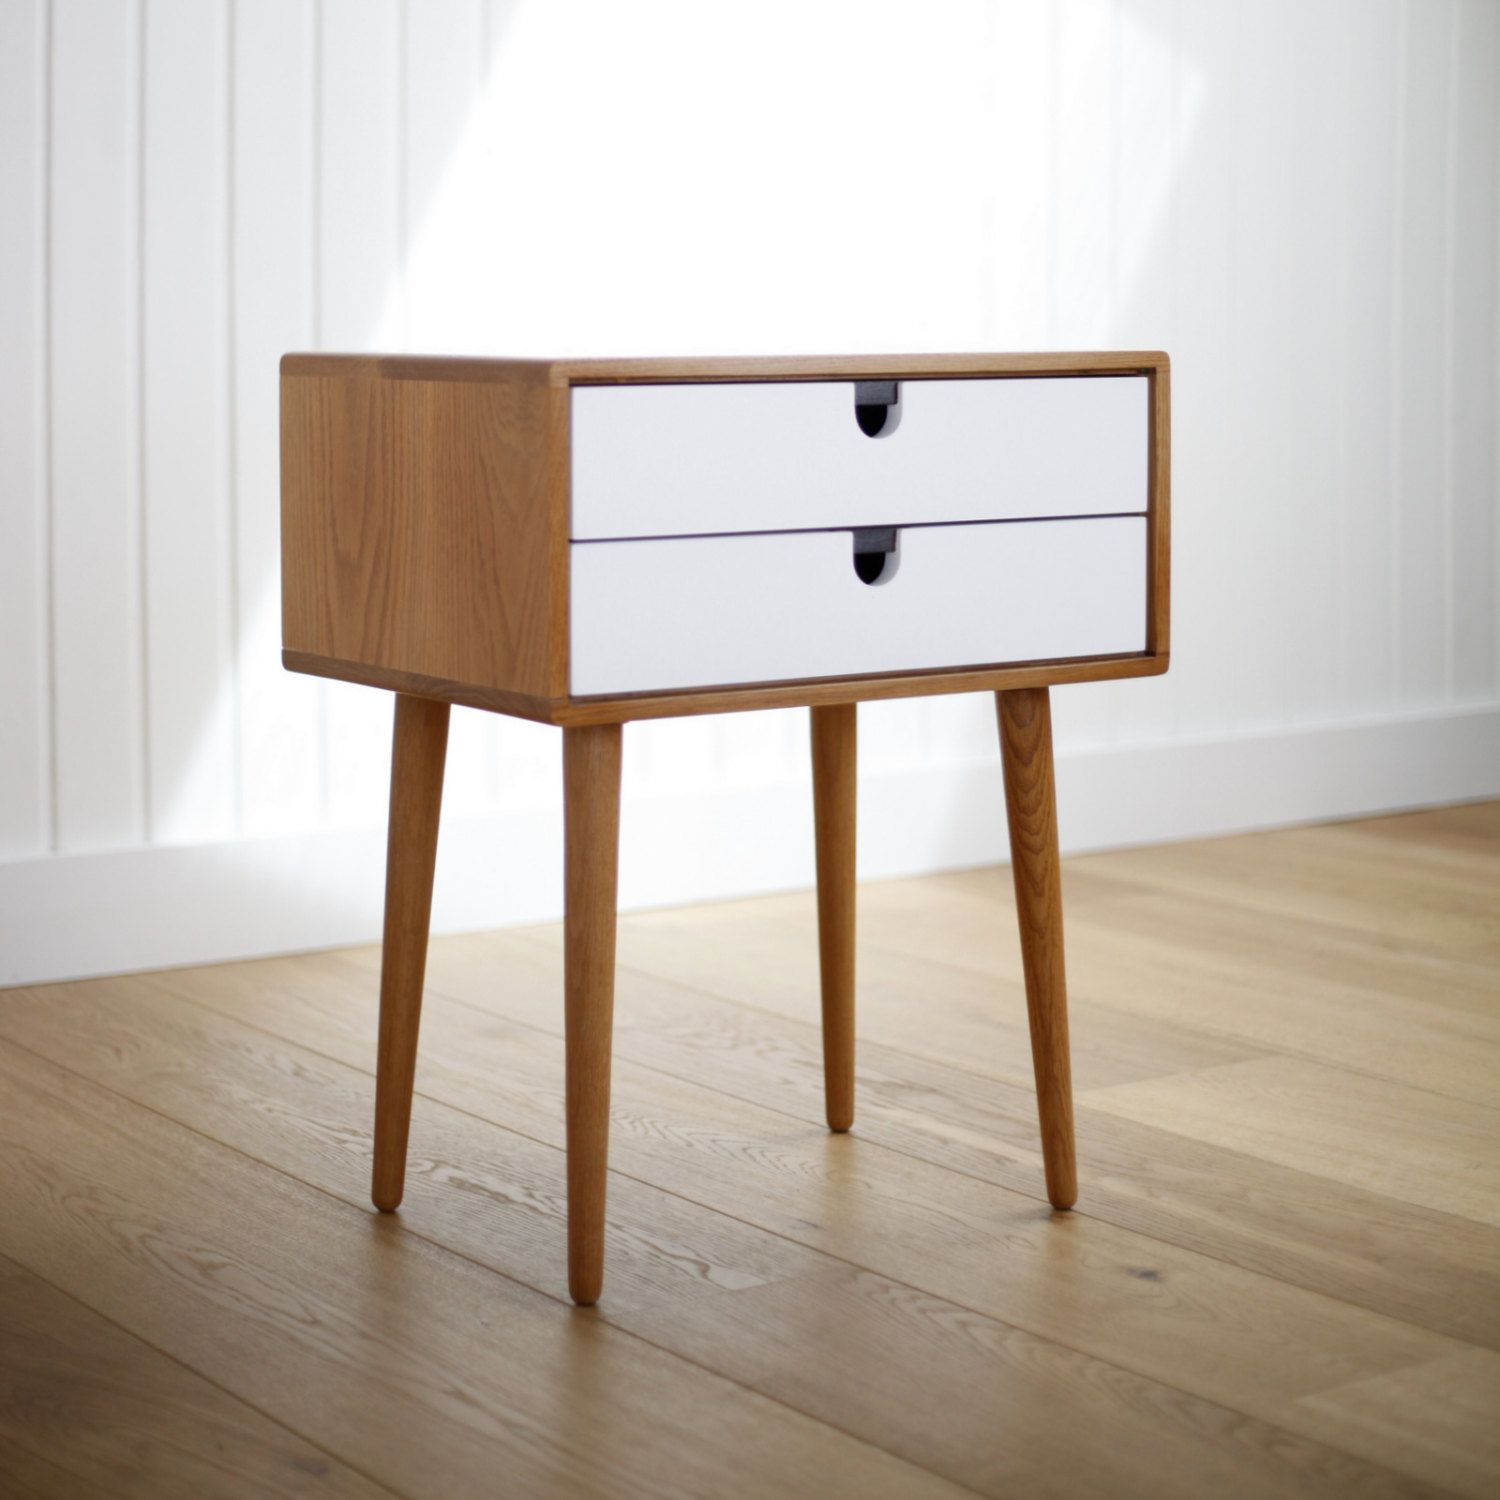 2014 Collection MidCentury Scandinavian Side Table / by Habitables, €345.00